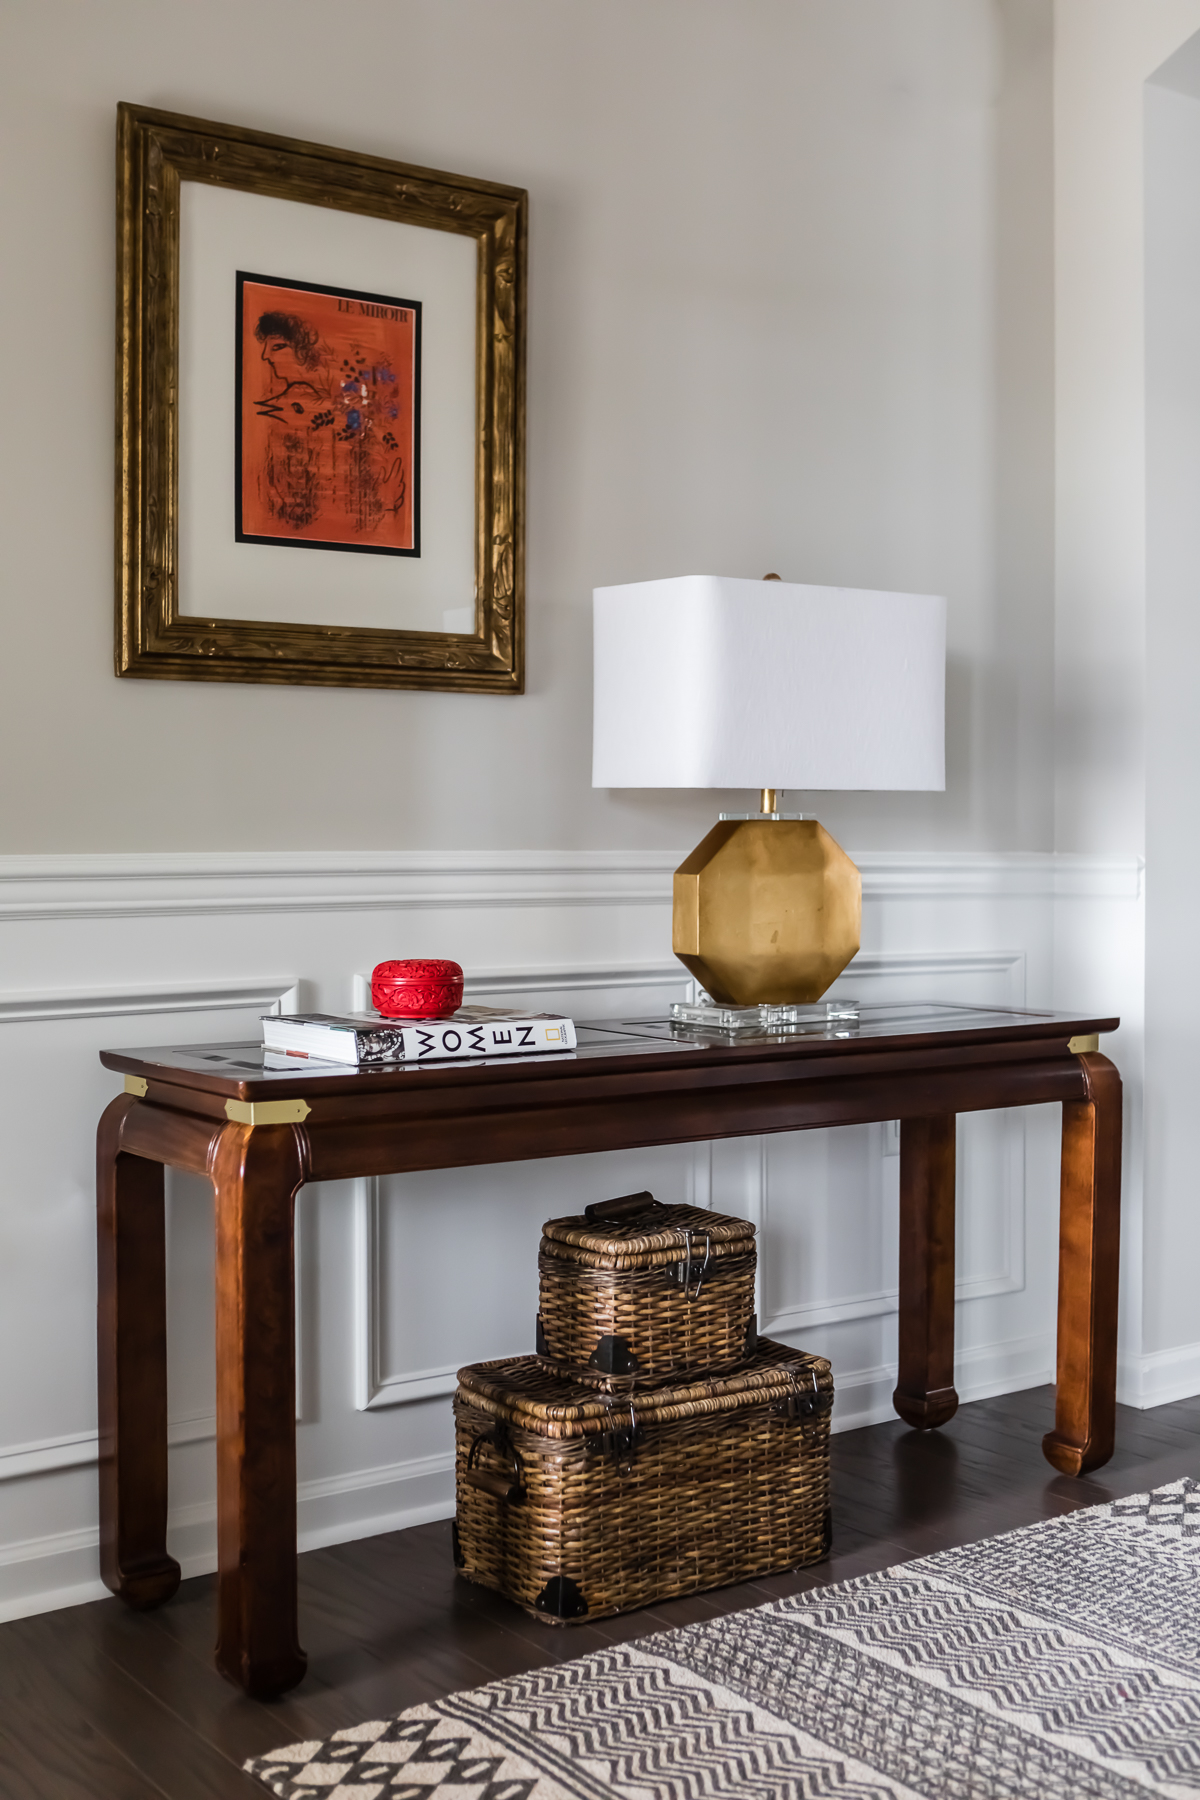 Asian Console Table Chagall Print Vintage Foyer